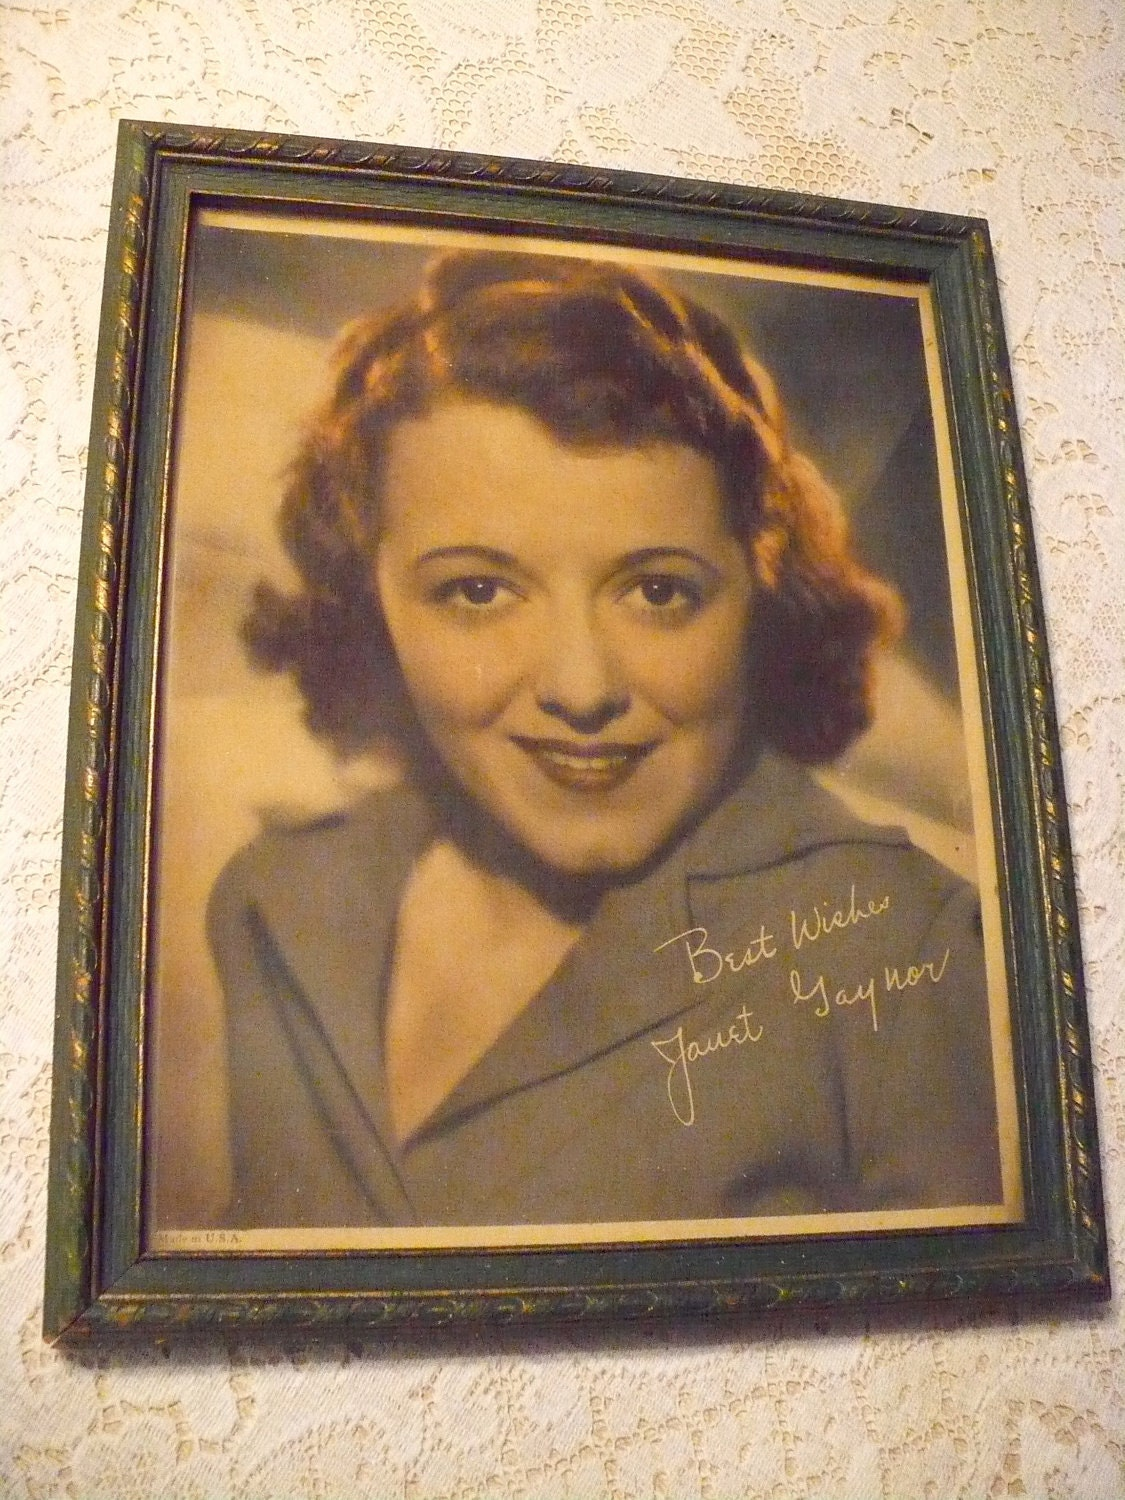 Janet Gaynor framed picture. From AusableRiverTrader